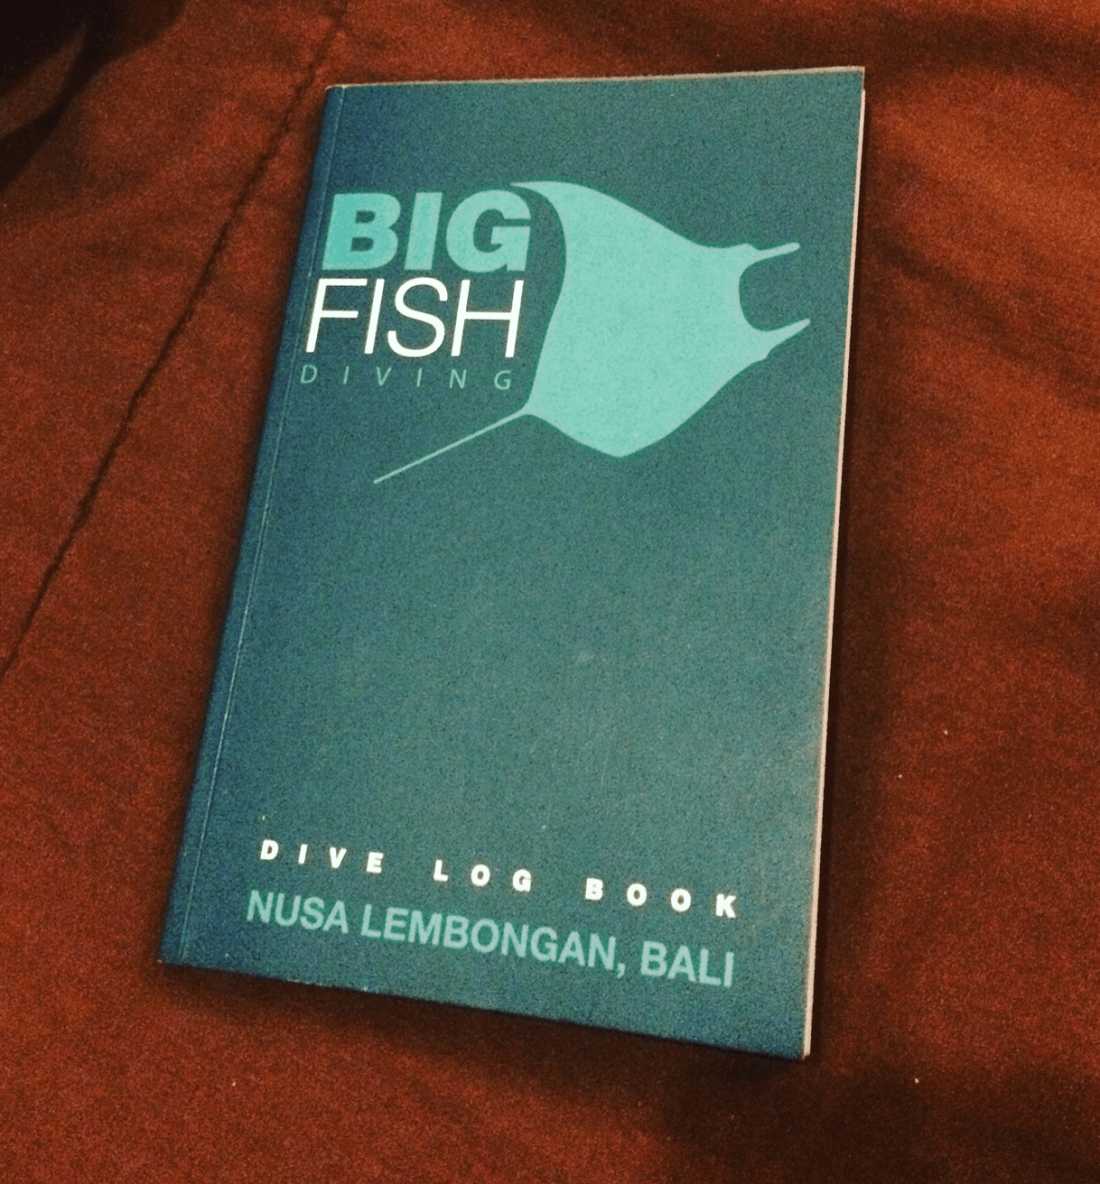 Bali, Indonesia - Big Fish dive book